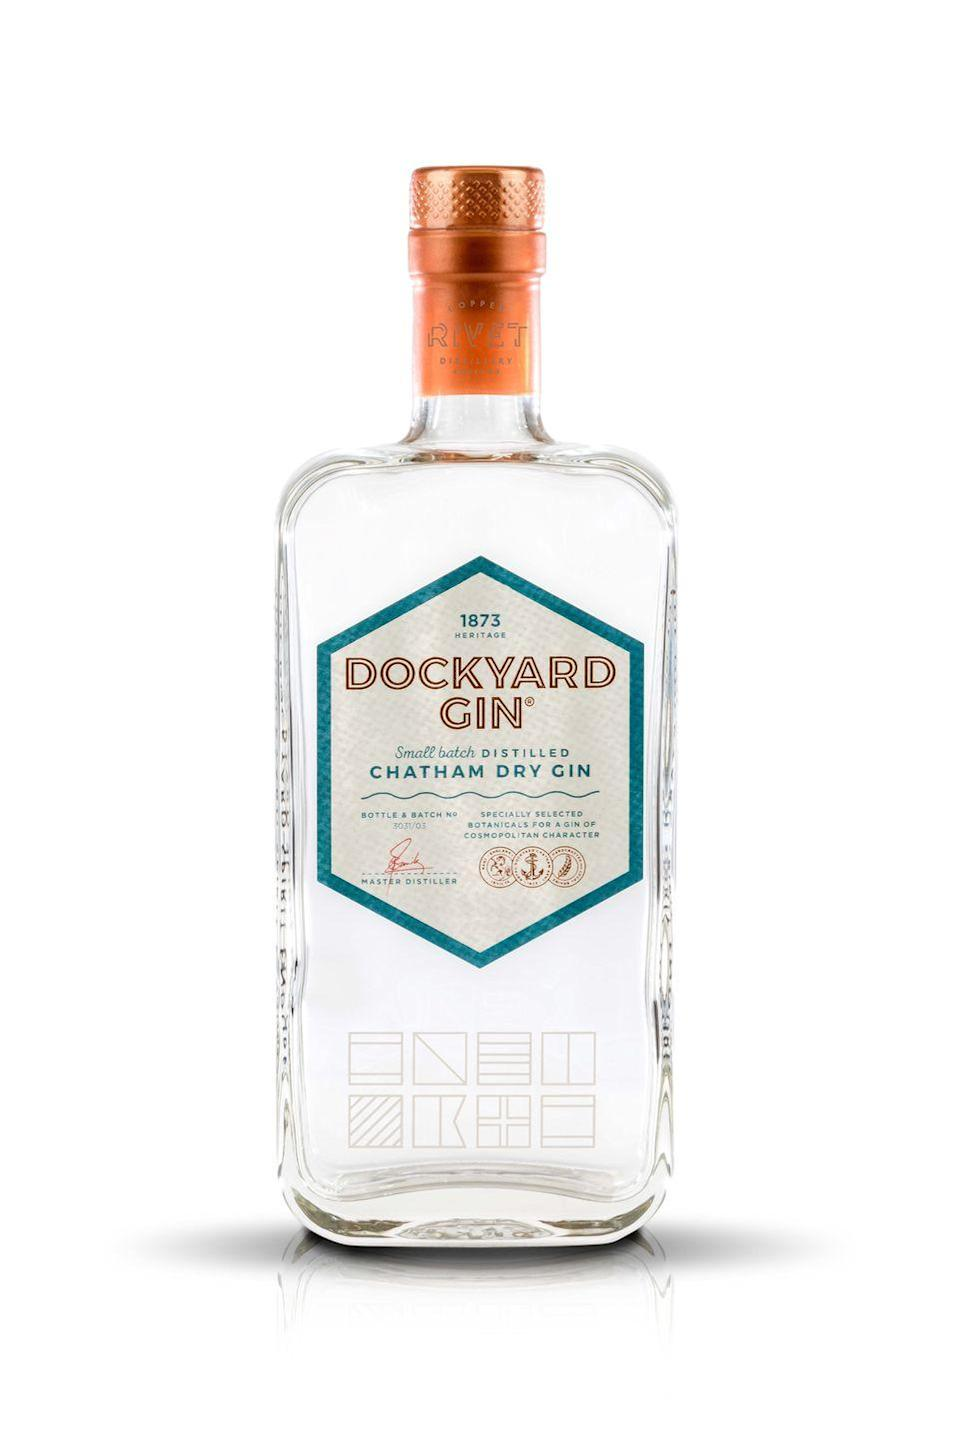 """<p>This small-batch distiller in Chatham Dockyard might sound quintessentially English, but its signature gin, <a href=""""https://www.copperrivetdistillery.com/product/dockyard-gin/"""" rel=""""nofollow noopener"""" target=""""_blank"""" data-ylk=""""slk:Dockyard"""" class=""""link rapid-noclick-resp"""">Dockyard</a>, includes Italian juniper berries, Bulgarian coriander seeds, Spanish orange peel, Guatemalan green cardamom and grains of paradise from Africa. All this combined creates a strong and distinct taste that is truly international, with the subtle sent of fruit lingering in the aftertaste. </p><p>Pair with <a href=""""https://www.merchantsheart.co.uk/collection/pink-peppercorn/#1"""" rel=""""nofollow noopener"""" target=""""_blank"""" data-ylk=""""slk:Merchant's Heart Pink Peppercorn tonic"""" class=""""link rapid-noclick-resp"""">Merchant's Heart Pink Peppercorn tonic</a> for a full-flavour G&T. The pink peppercorn is a gentle spicy kick of an enhancer, that works perfectly with the Dockyard. The soft, slightly bitter note of the pink peppercorn builds the more you sip, taking you on a journey through your drink.</p>"""